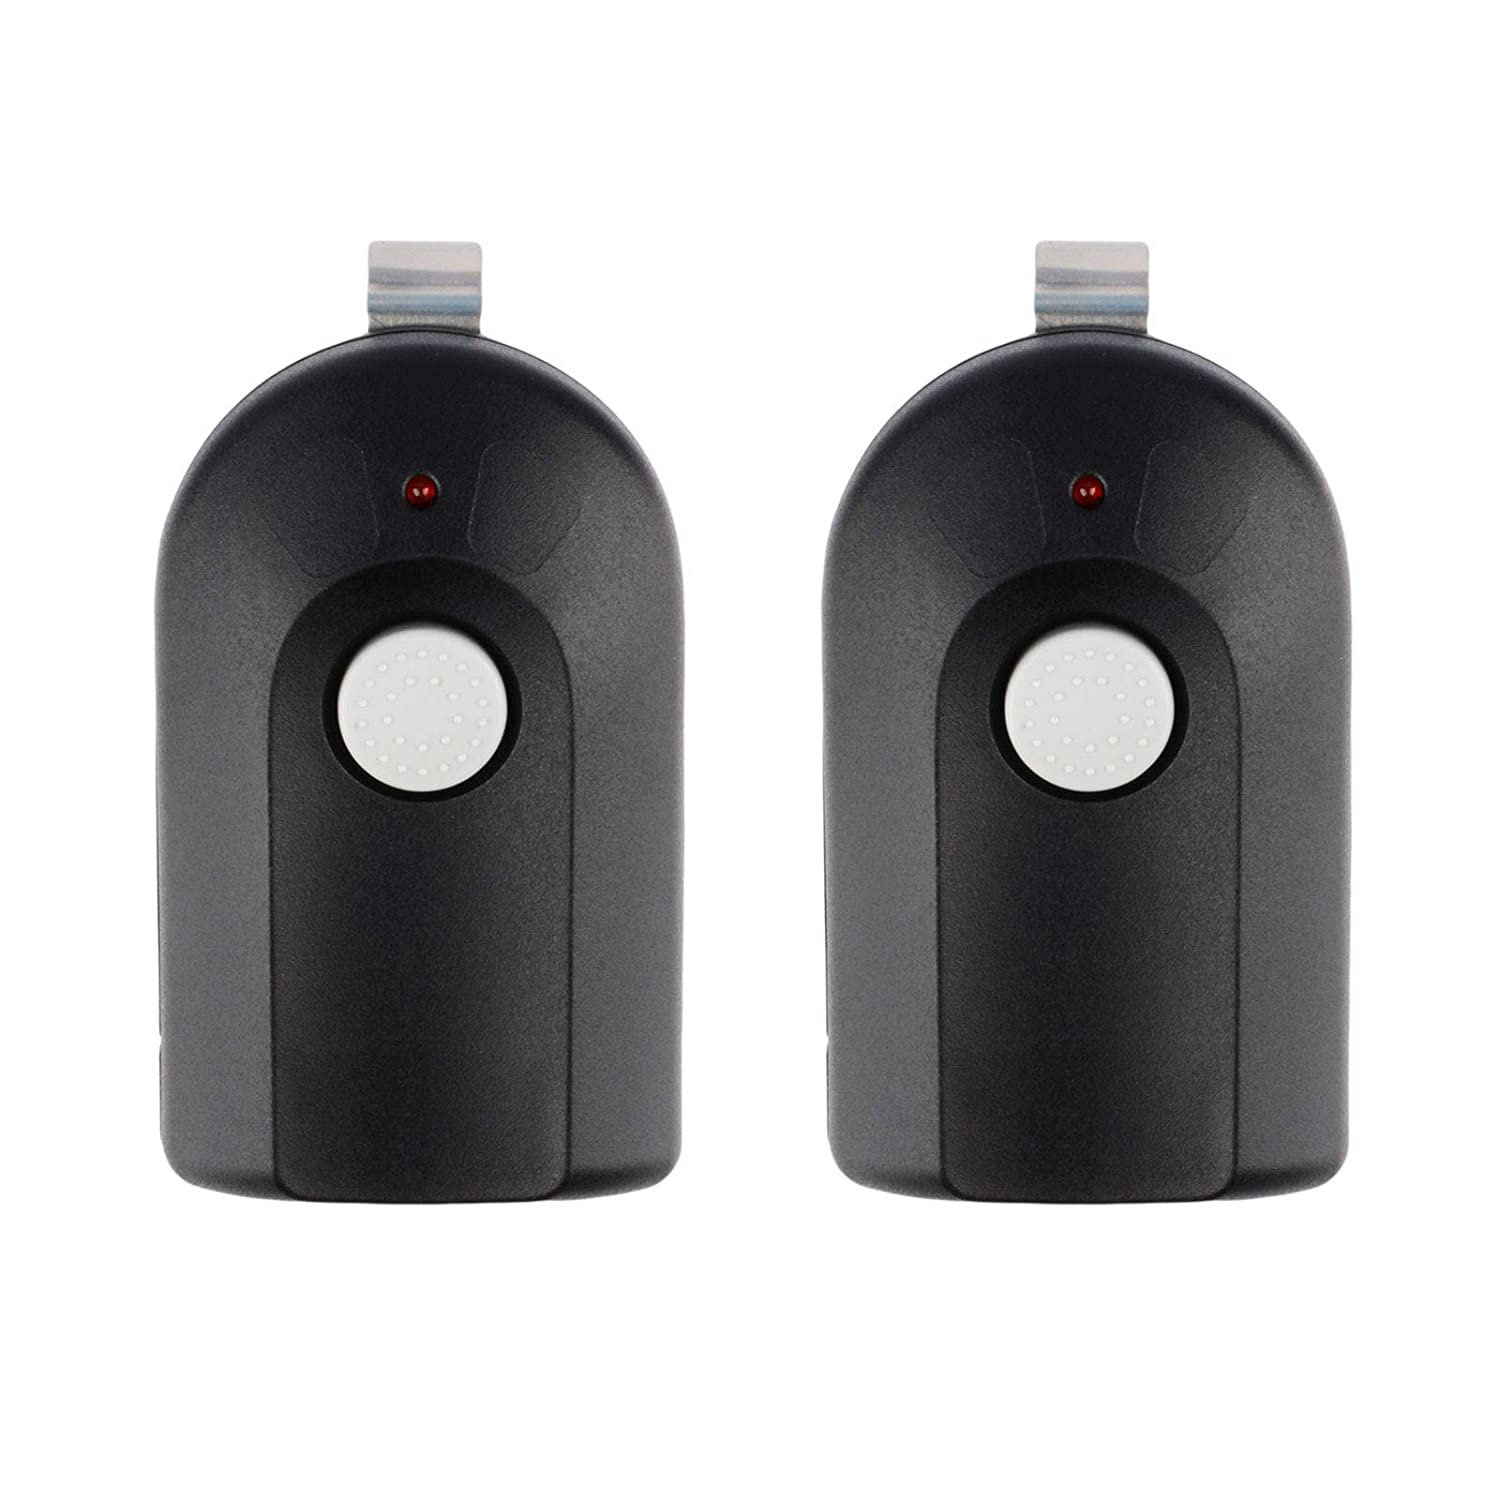 2 Garage Door Remotes for Genie ACSCTG Type 1